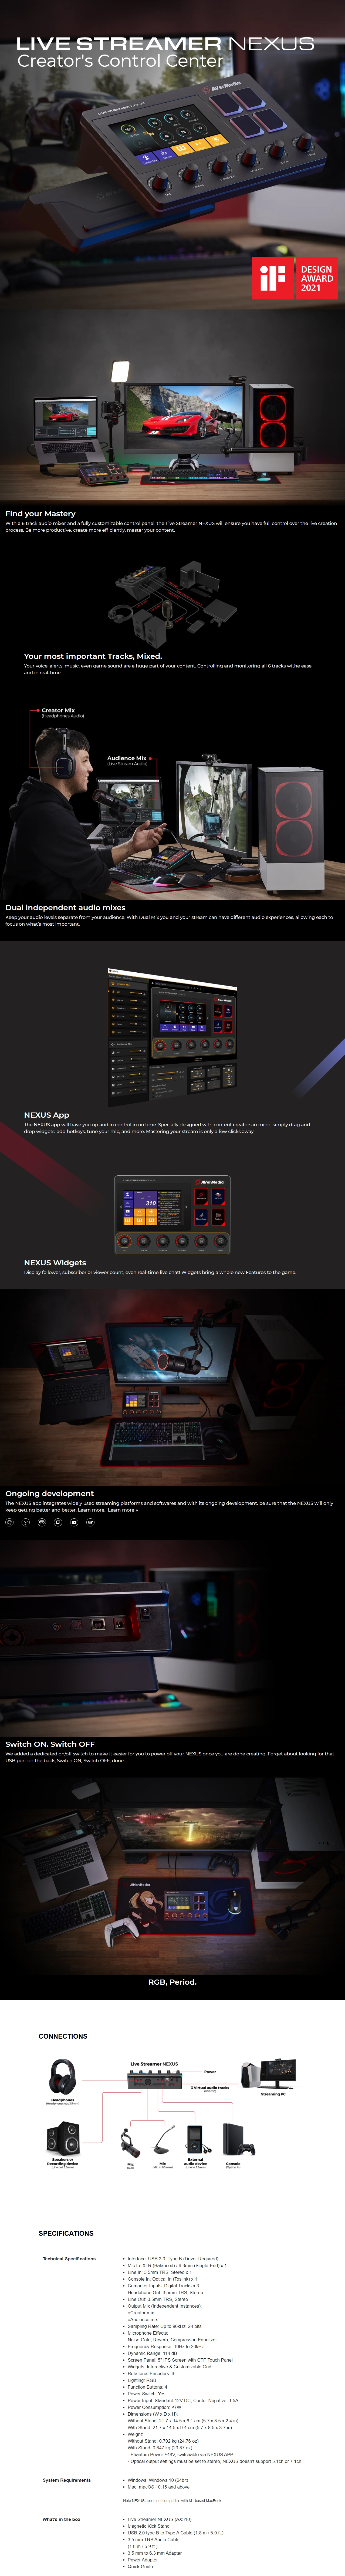 A large marketing image providing additional information about the product Avermedia AX310 Live Streamer Nexus - Additional alt info not provided